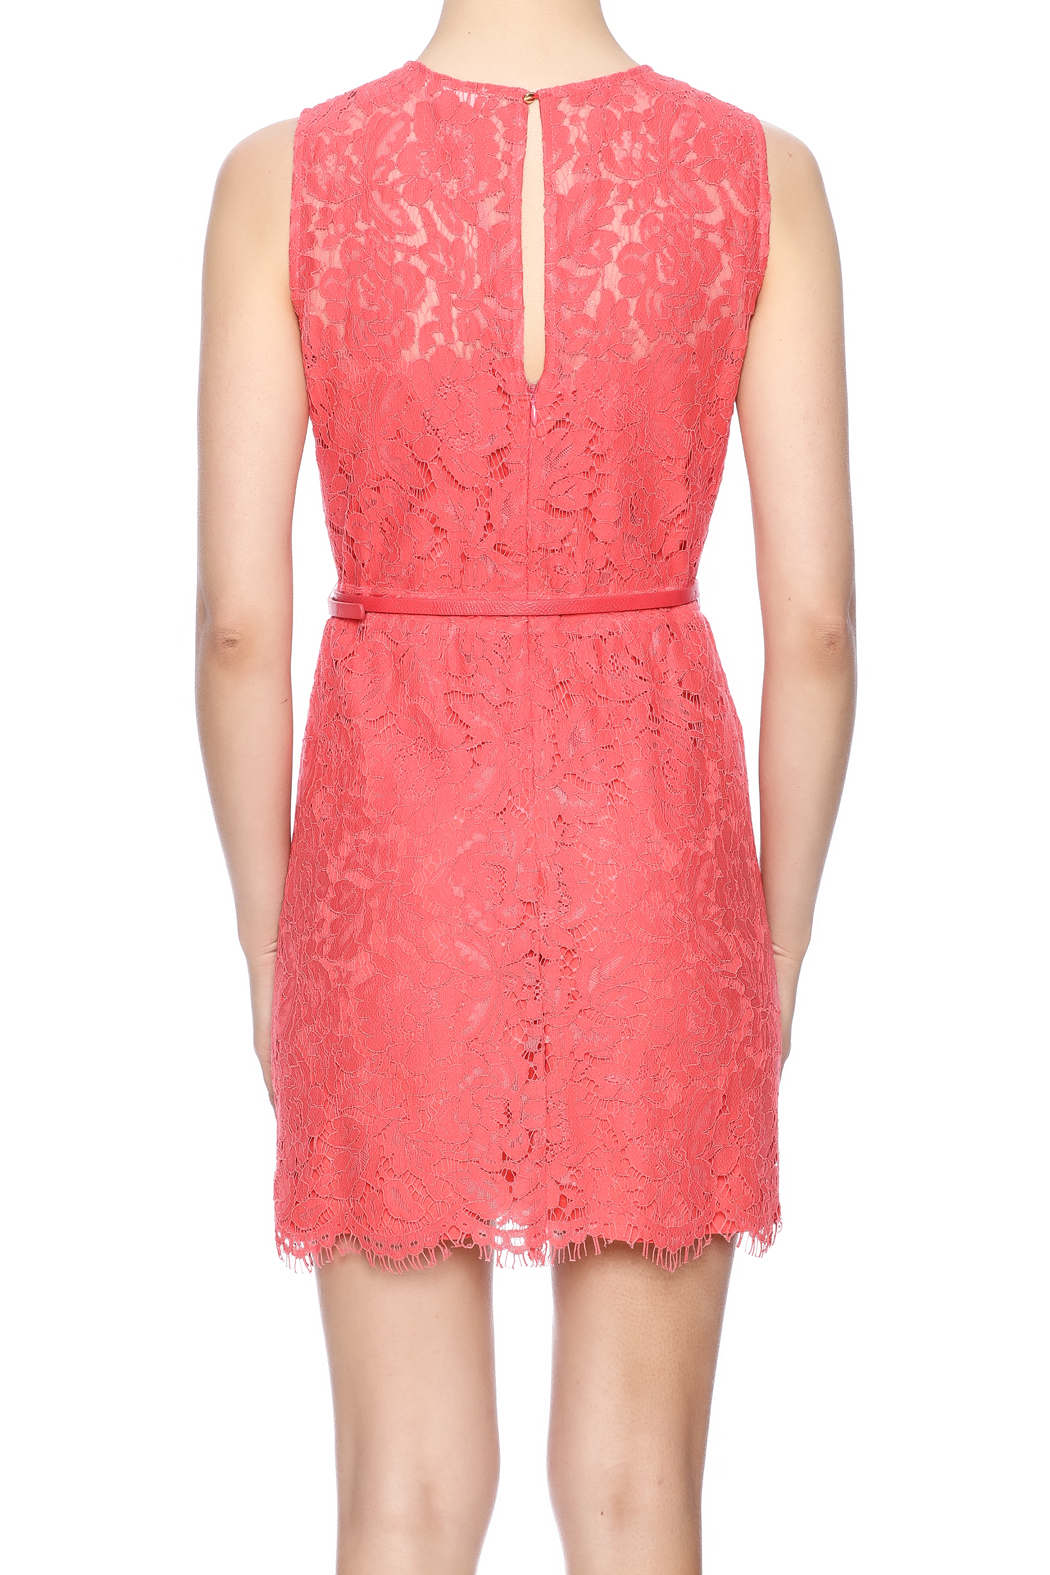 f41235adae1 LUNA Coral Lace Dress from Michigan by Sparrow Boutique — Shoptiques